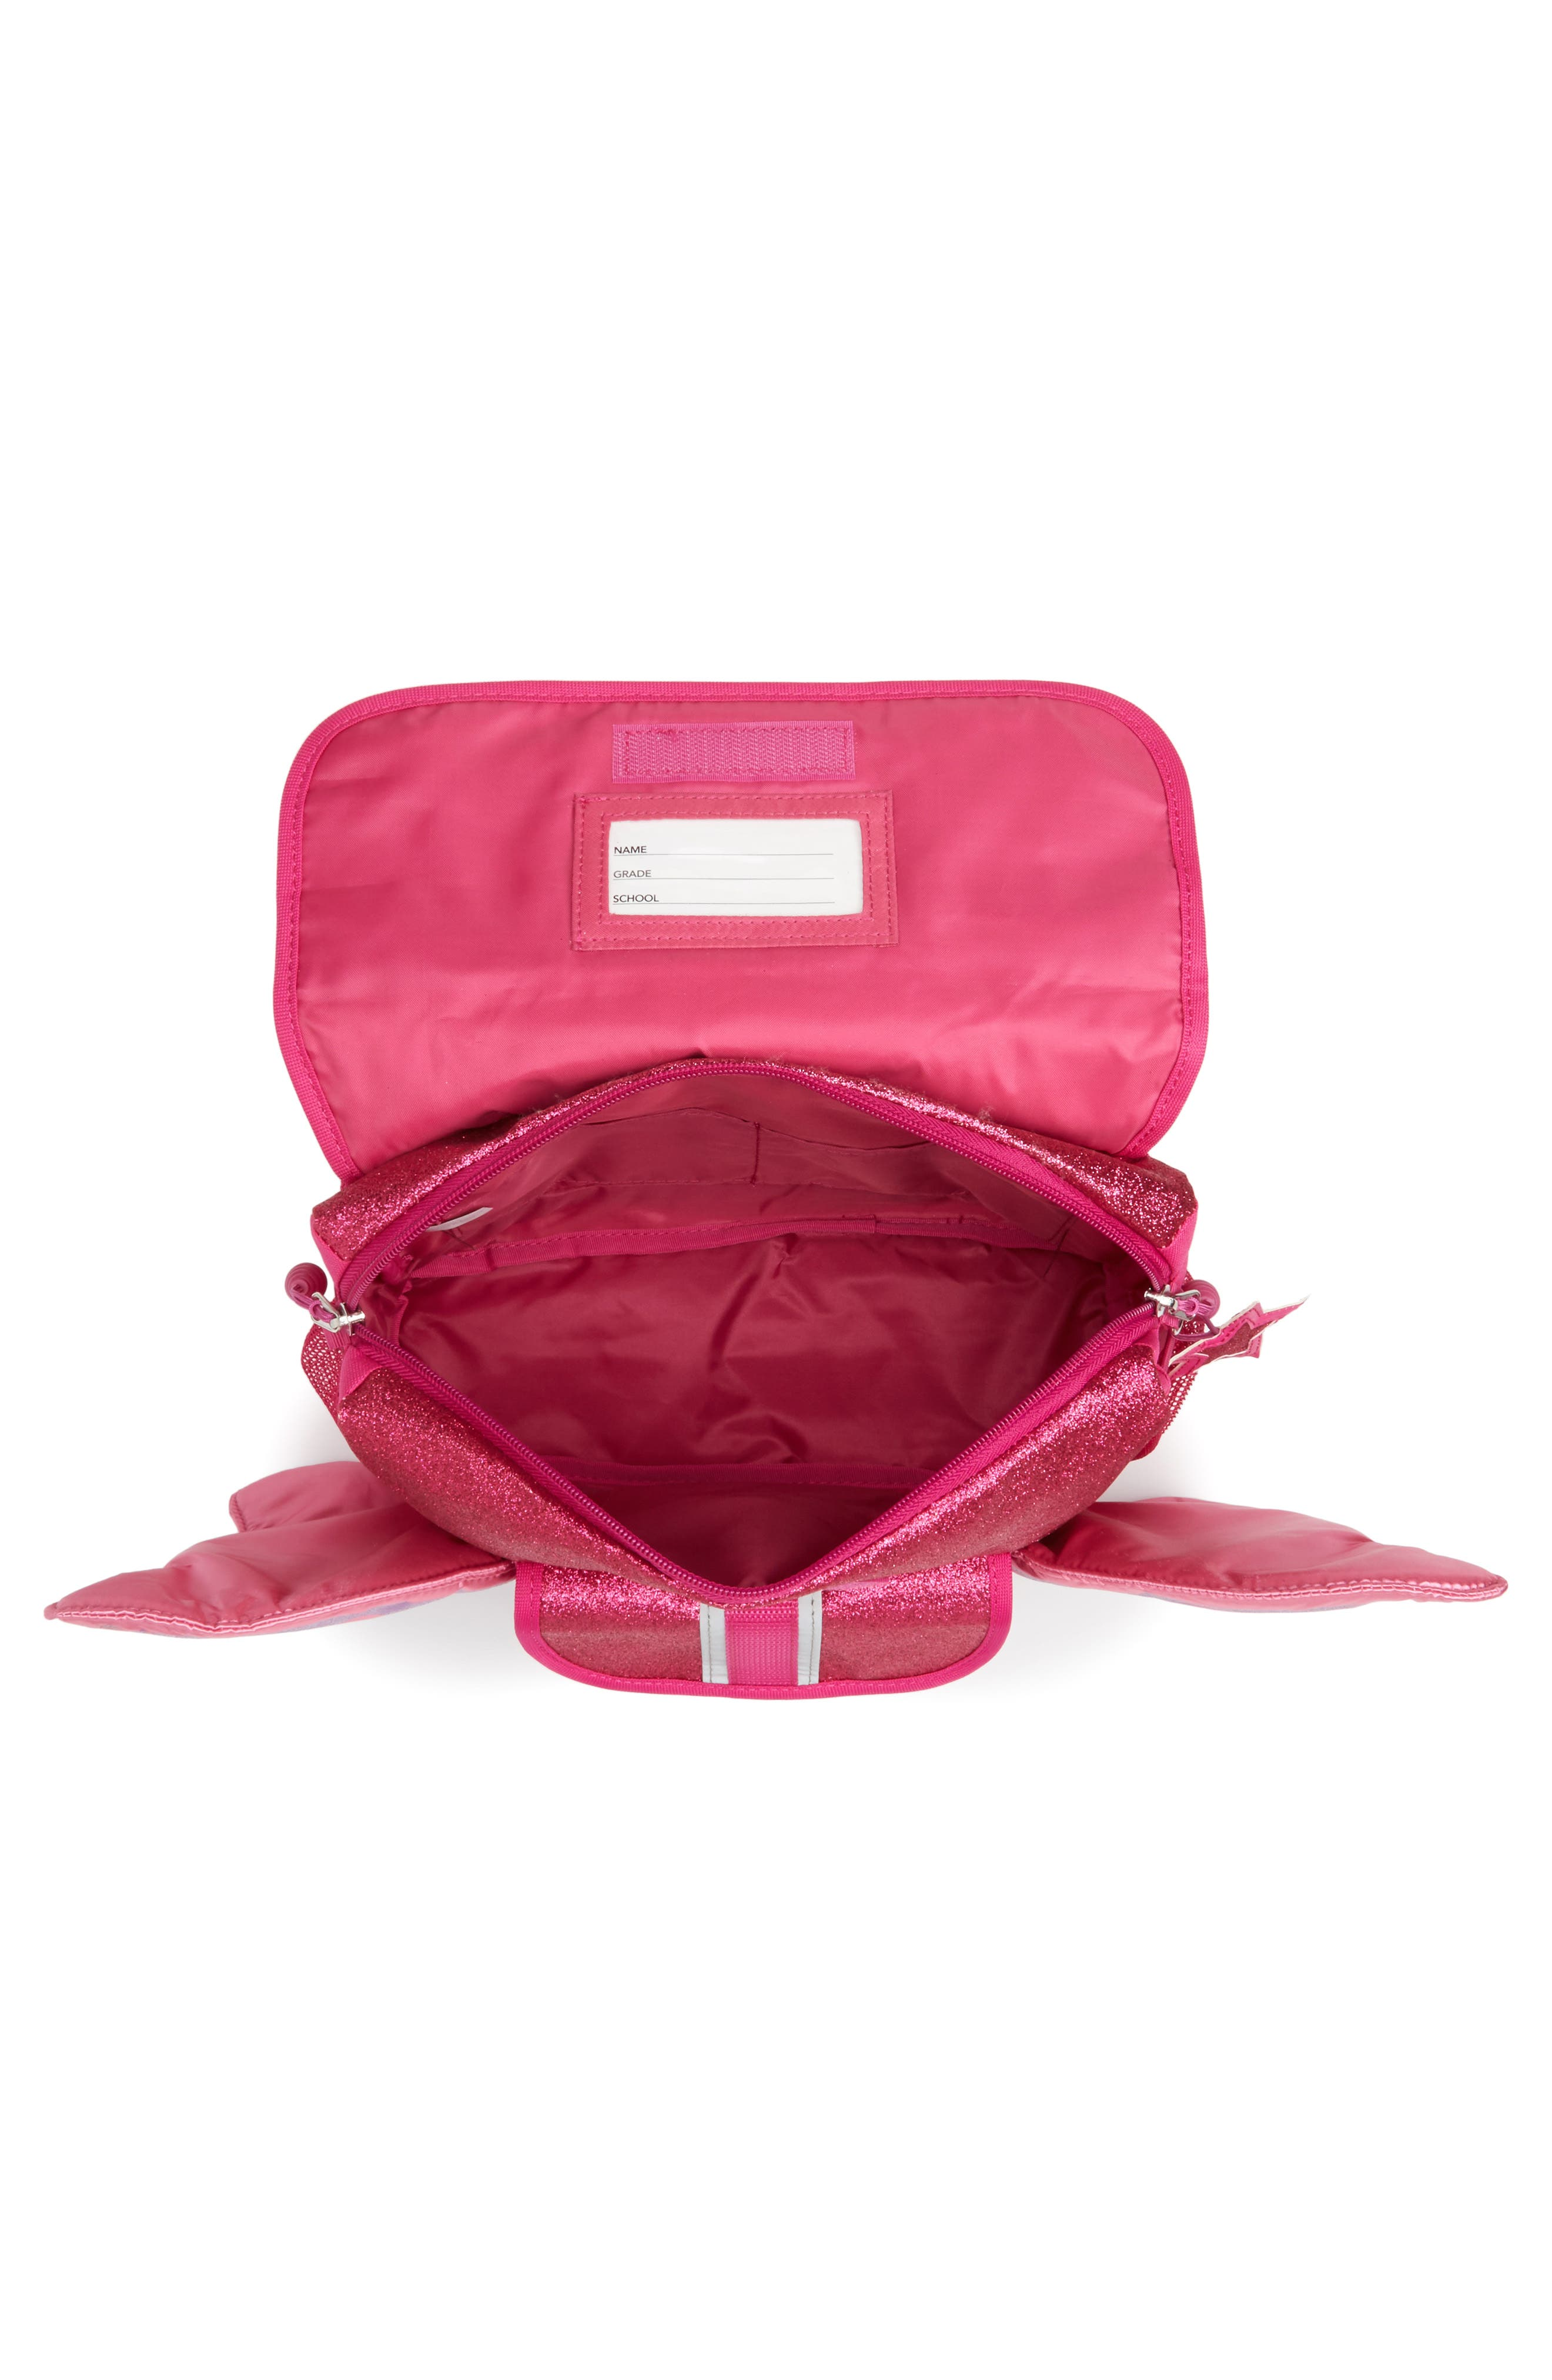 Sparkalicious Butterflyer Backpack,                             Alternate thumbnail 3, color,                             650